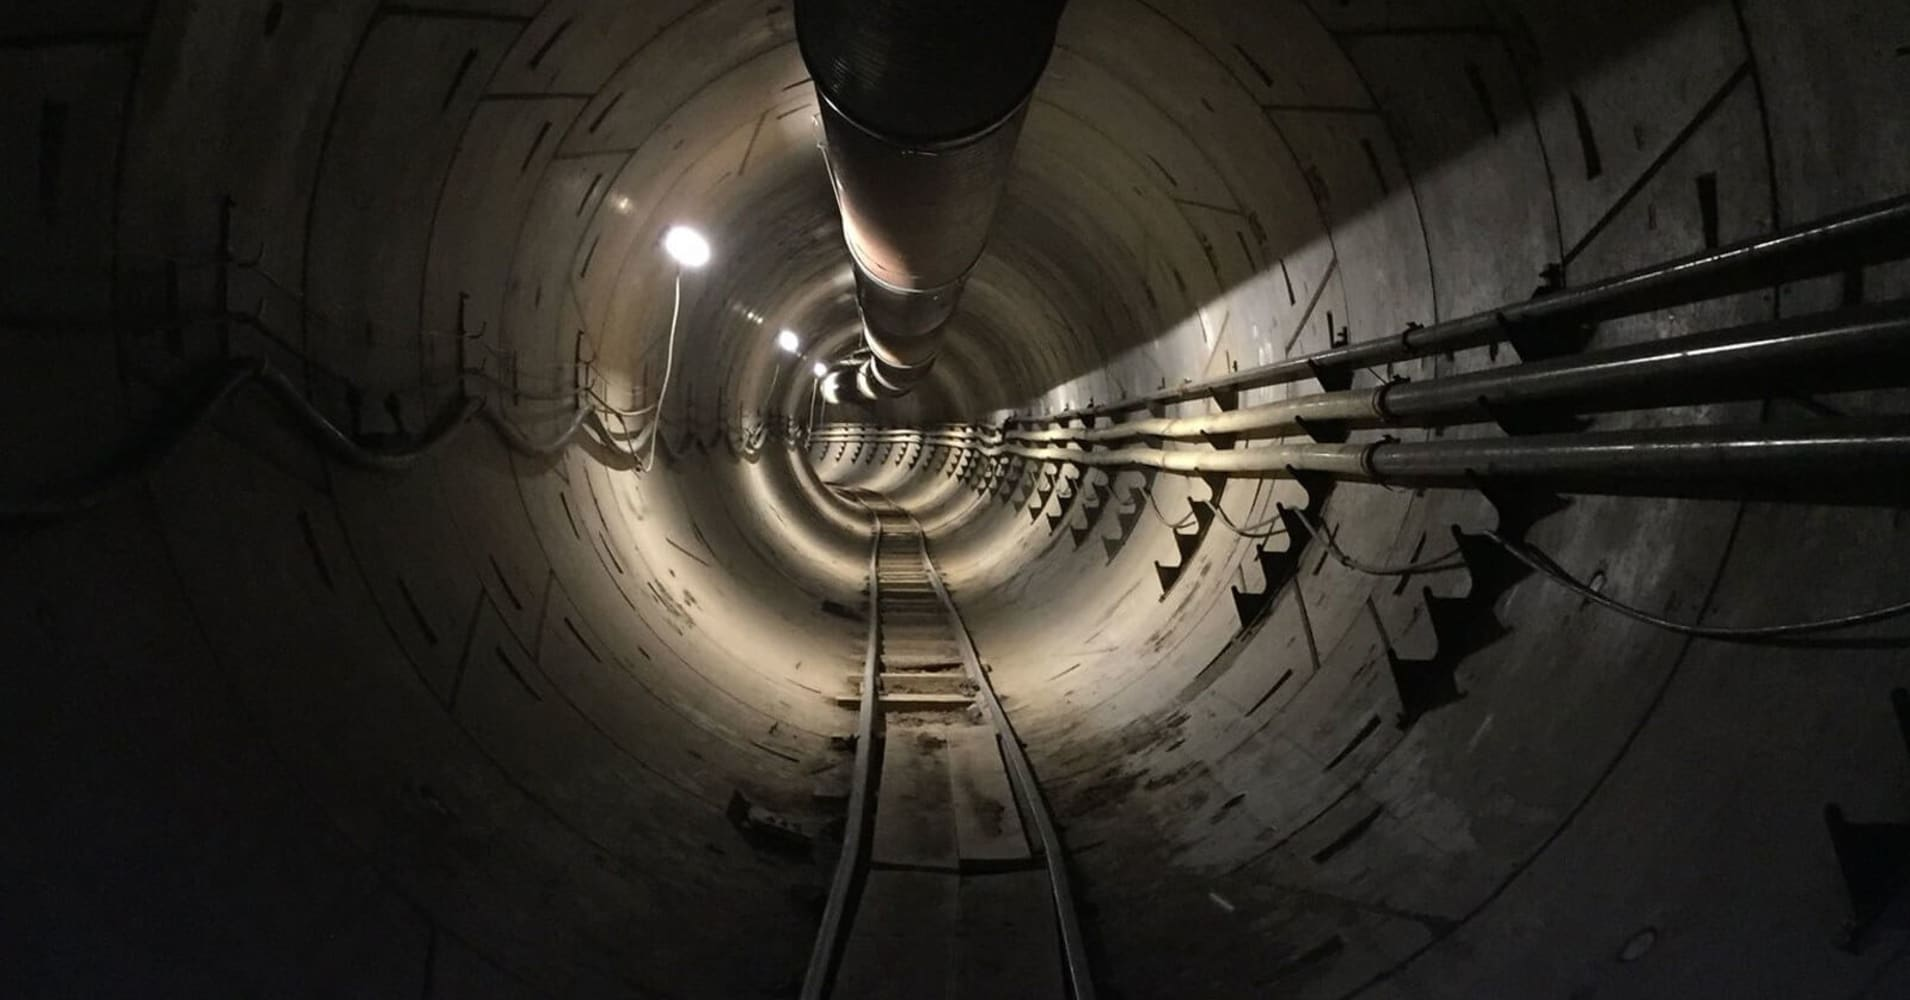 Dodger CFO says Elon Musk's 'Dugout Loop' tunnel should be ready by 2020